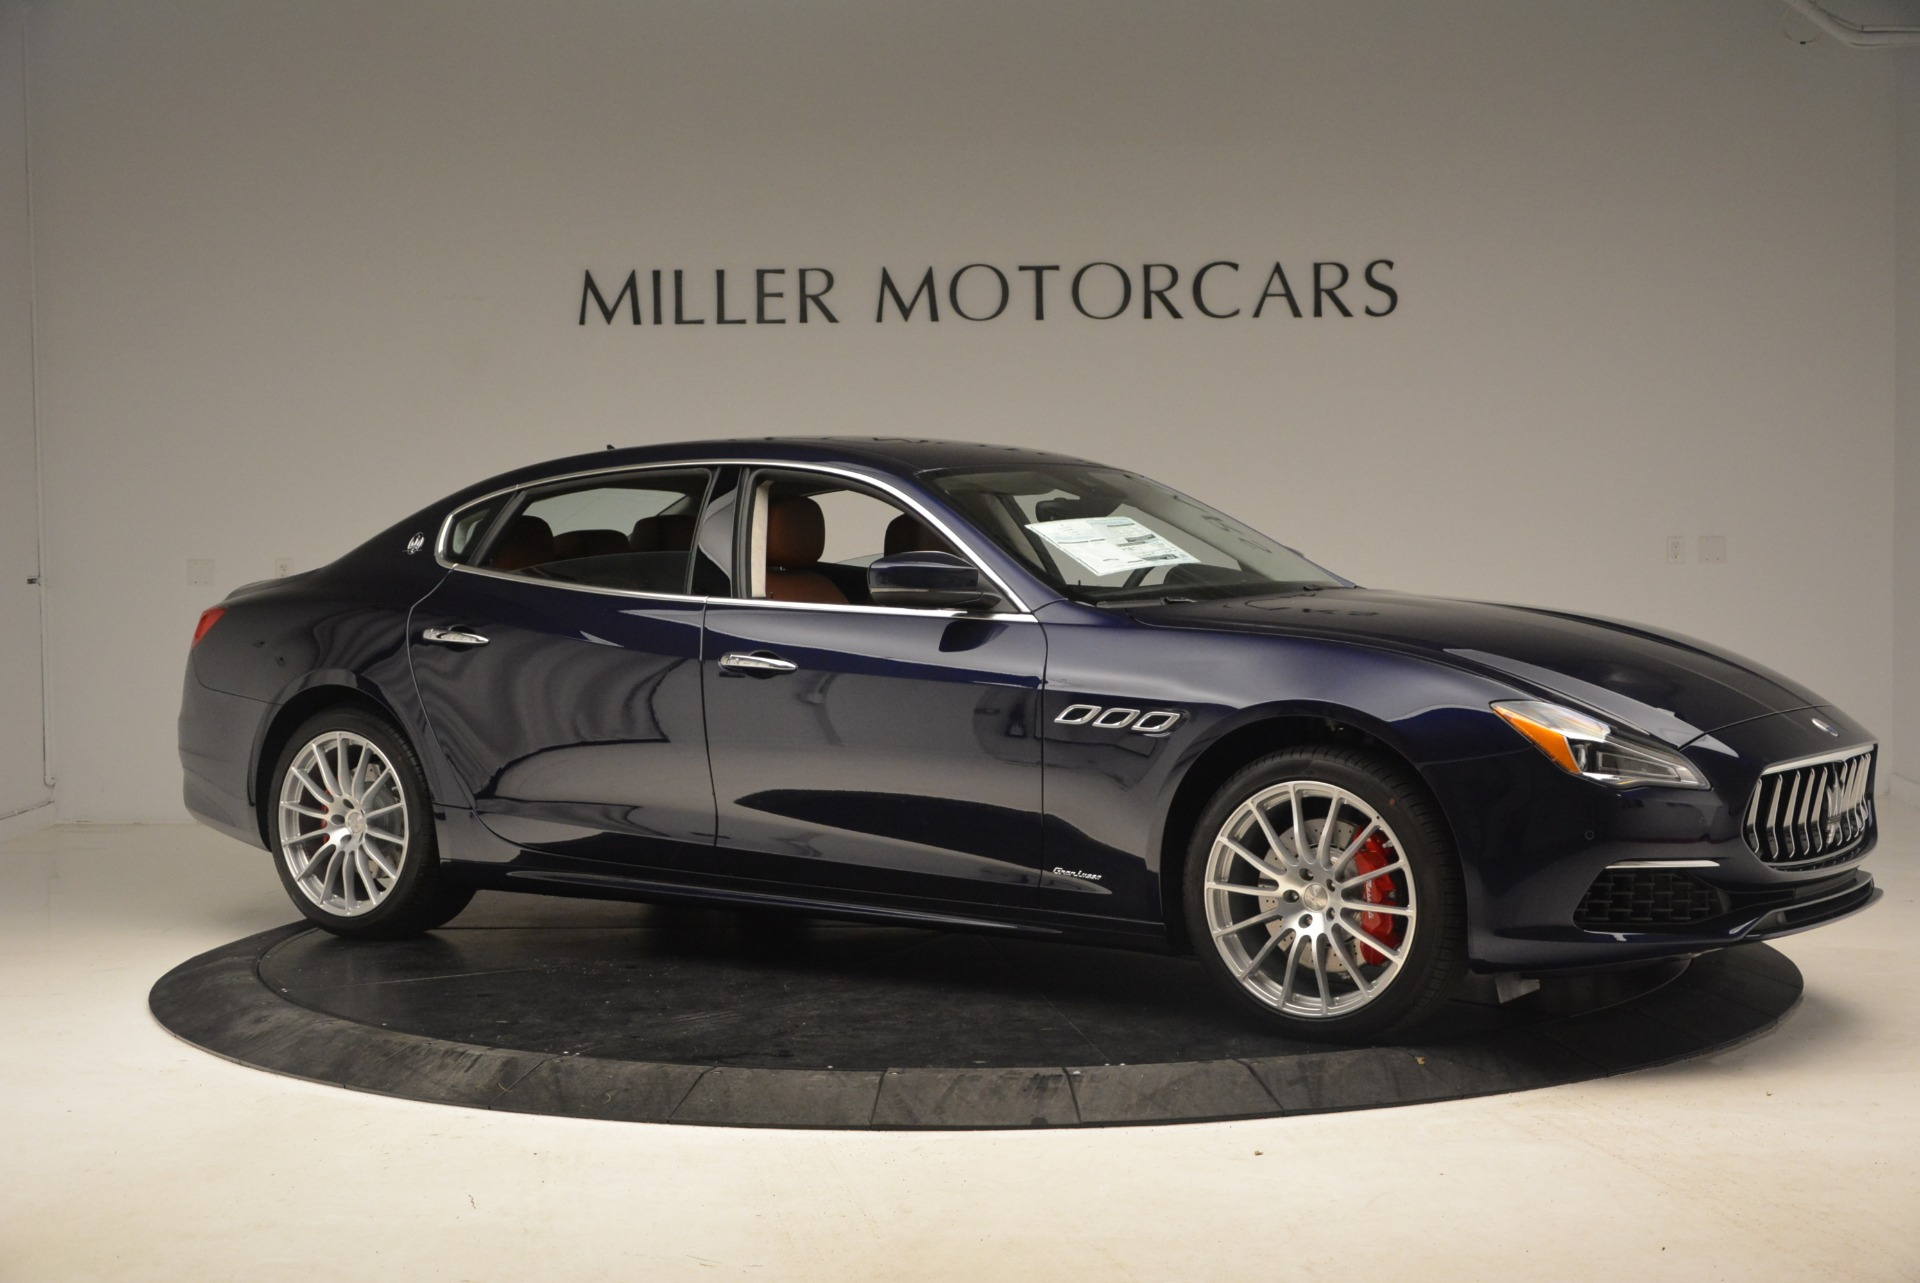 New 2019 Maserati Quattroporte S Q4 GranLusso For Sale In Greenwich, CT. Alfa Romeo of Greenwich, W631 2767_p10